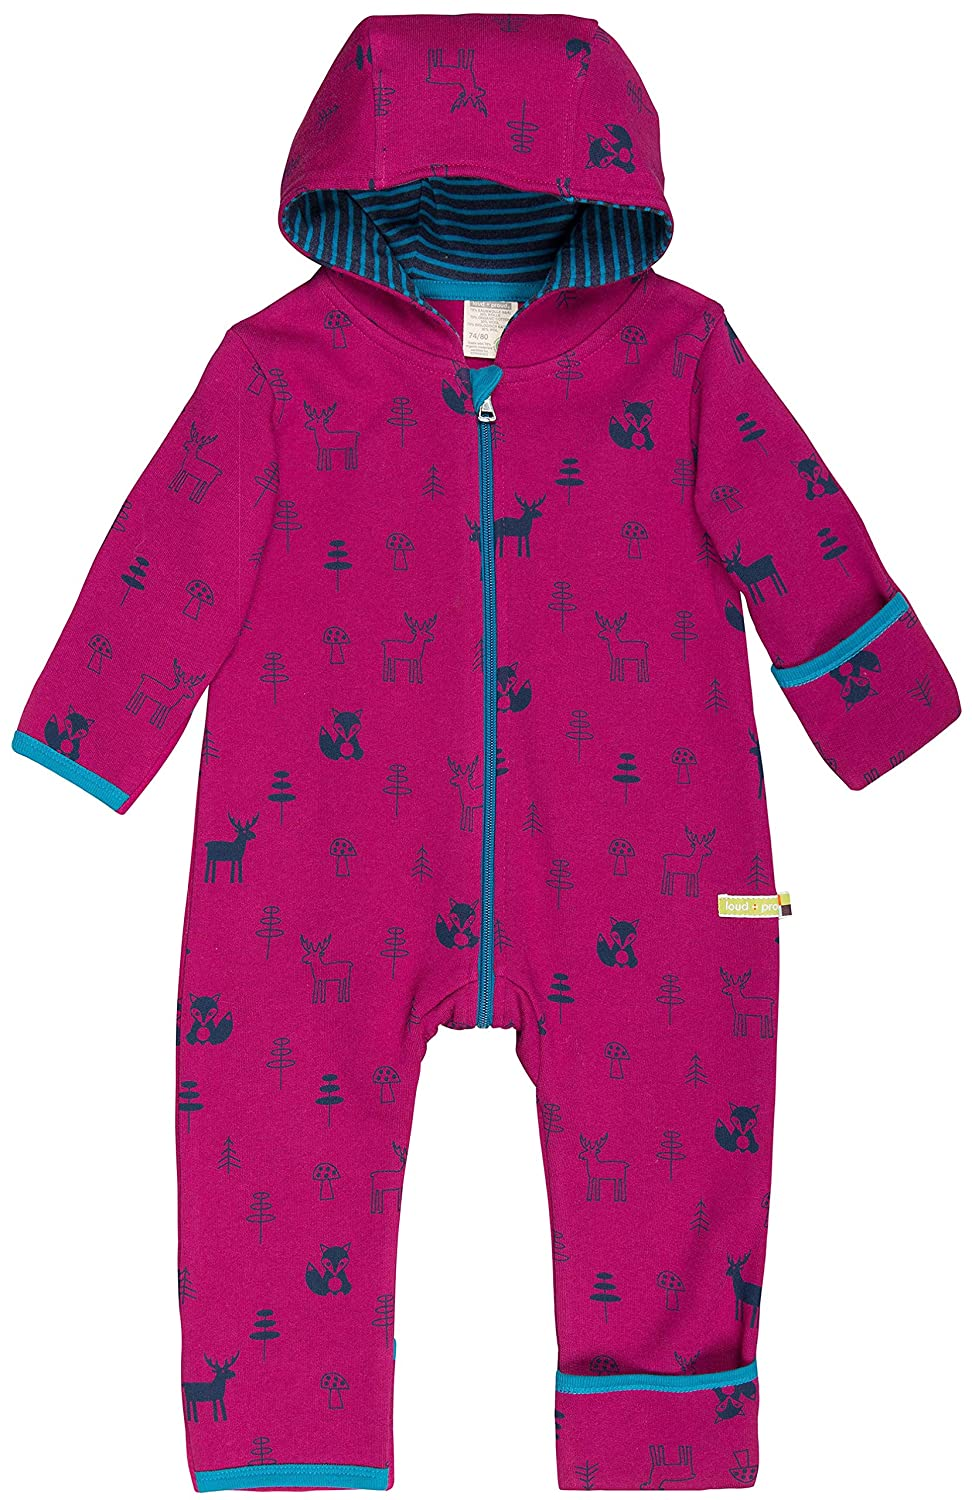 loud + proud Baby-Mädchen Strampler Overall Woll-Anteil 5035